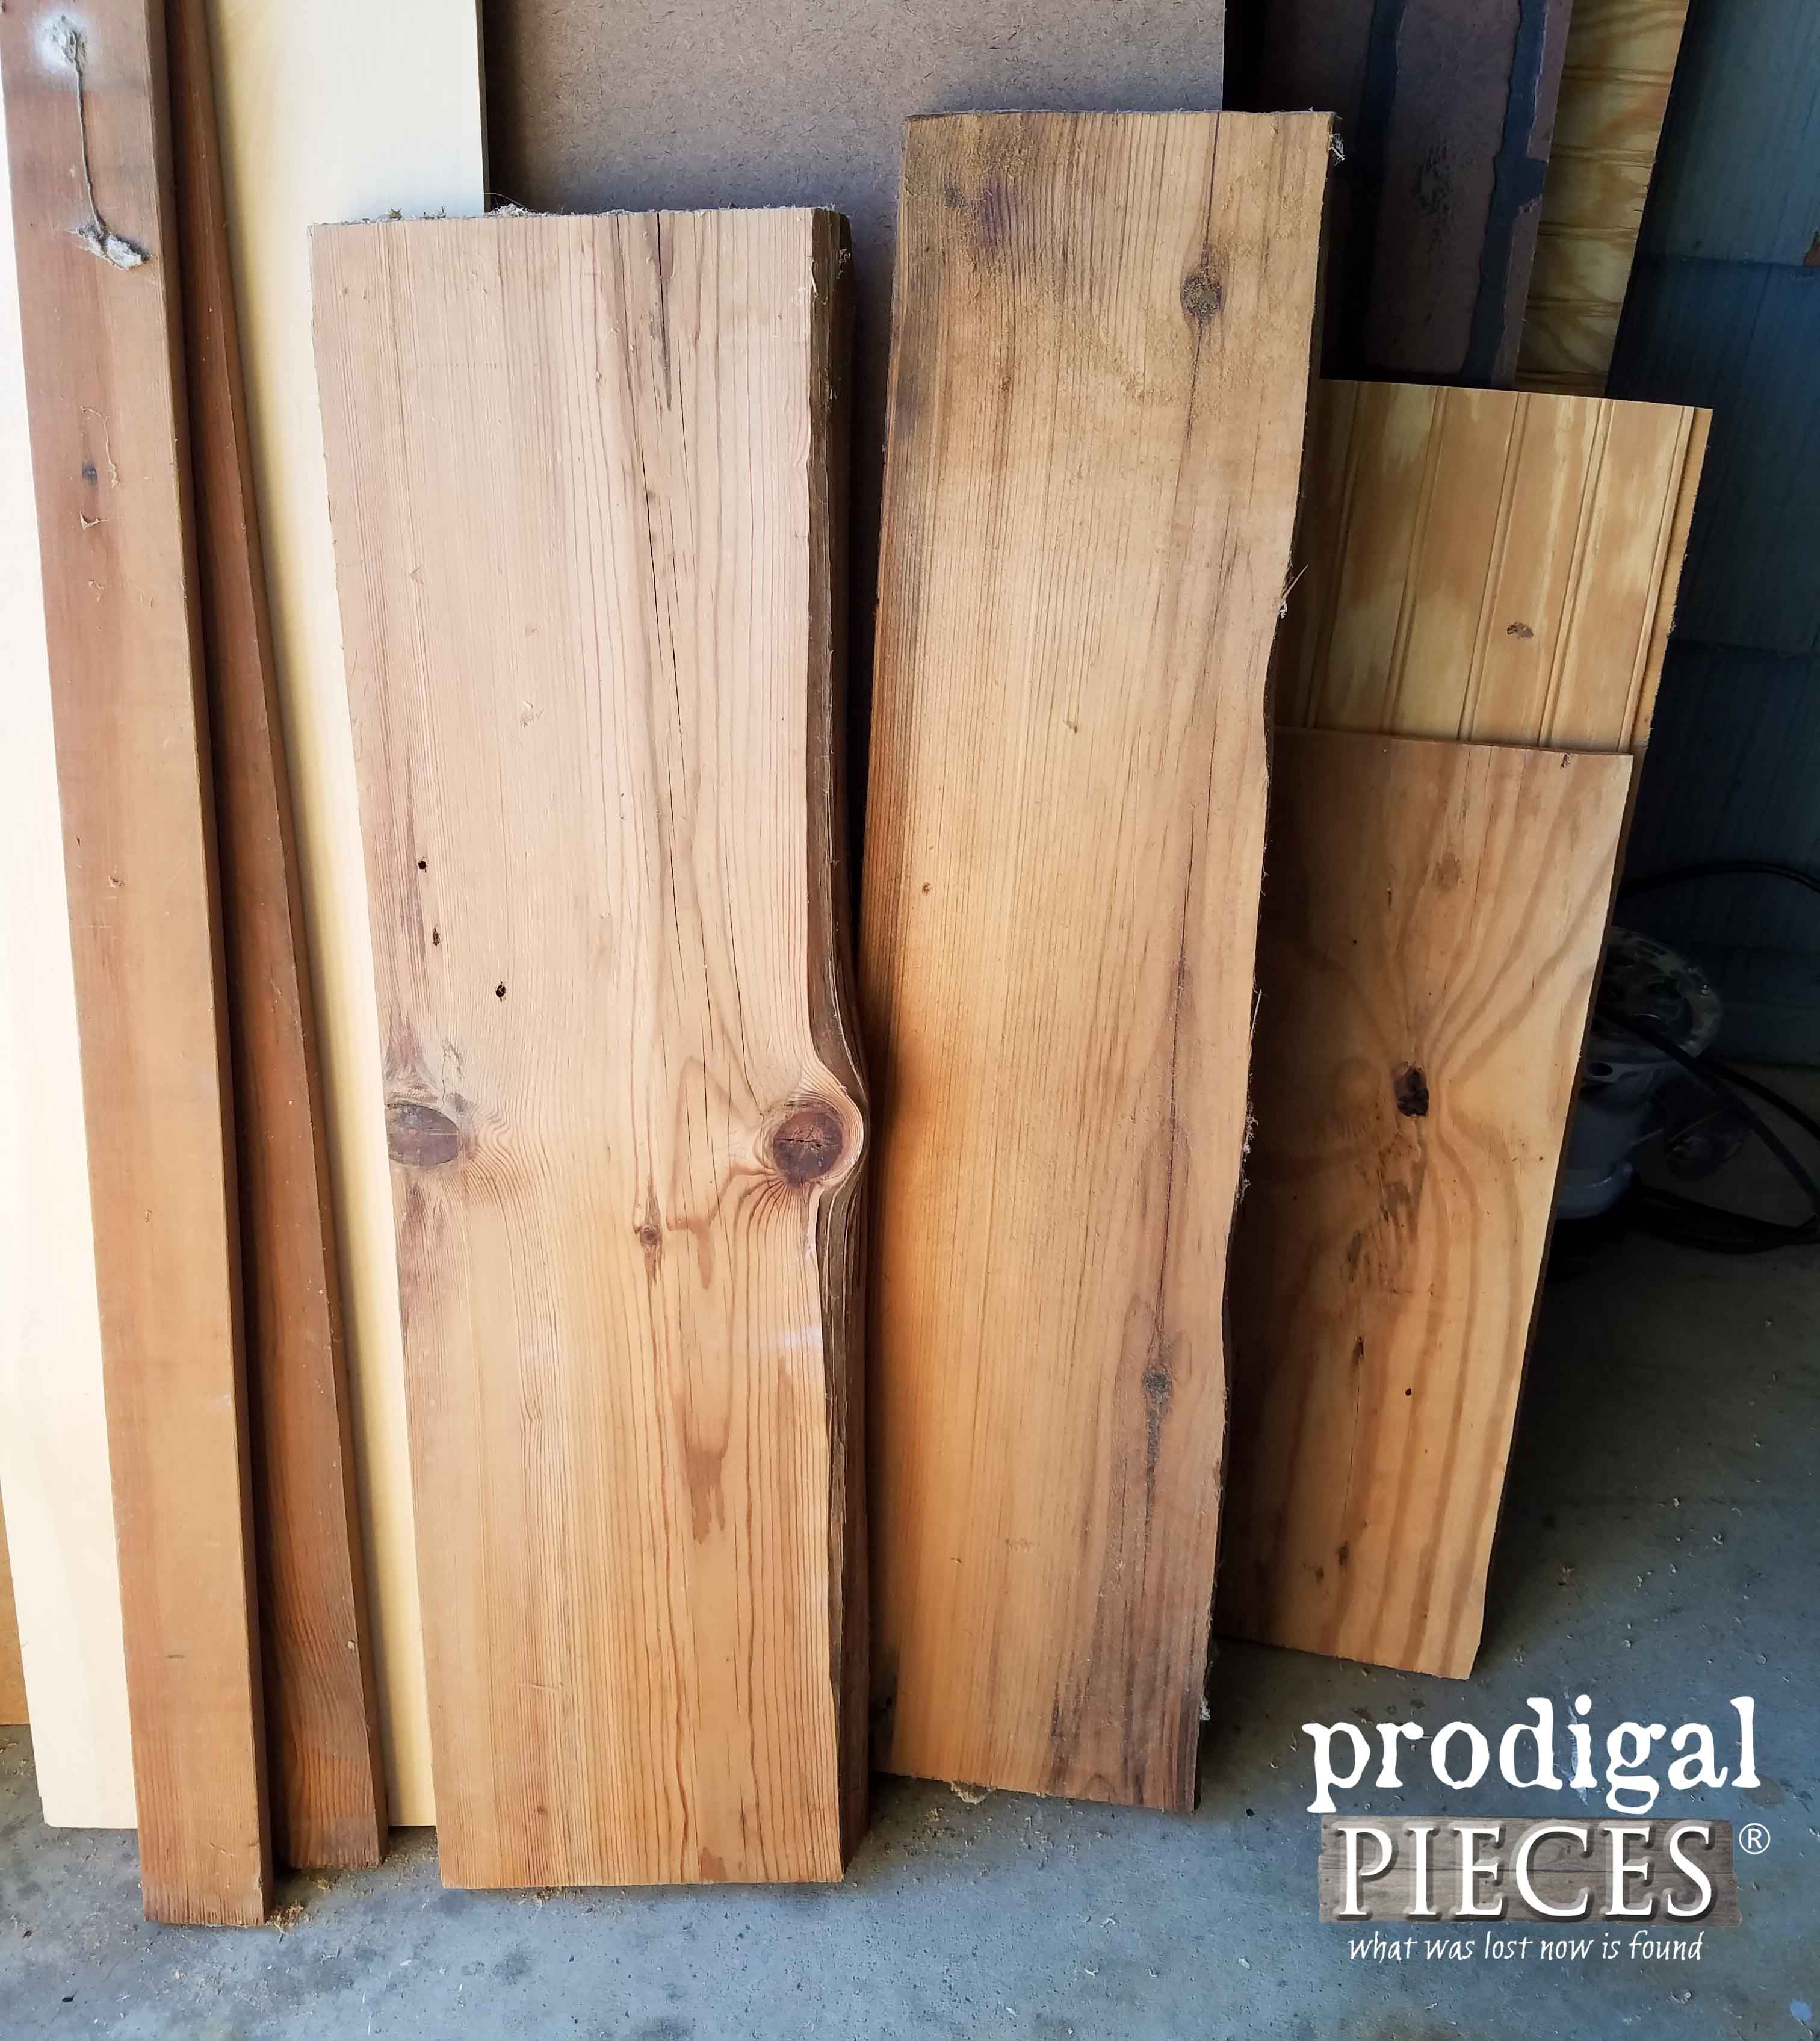 Reclaimed 1800's Pine for Kitchen Island Cart | Prodigal Pieces | prodigalpieces.com